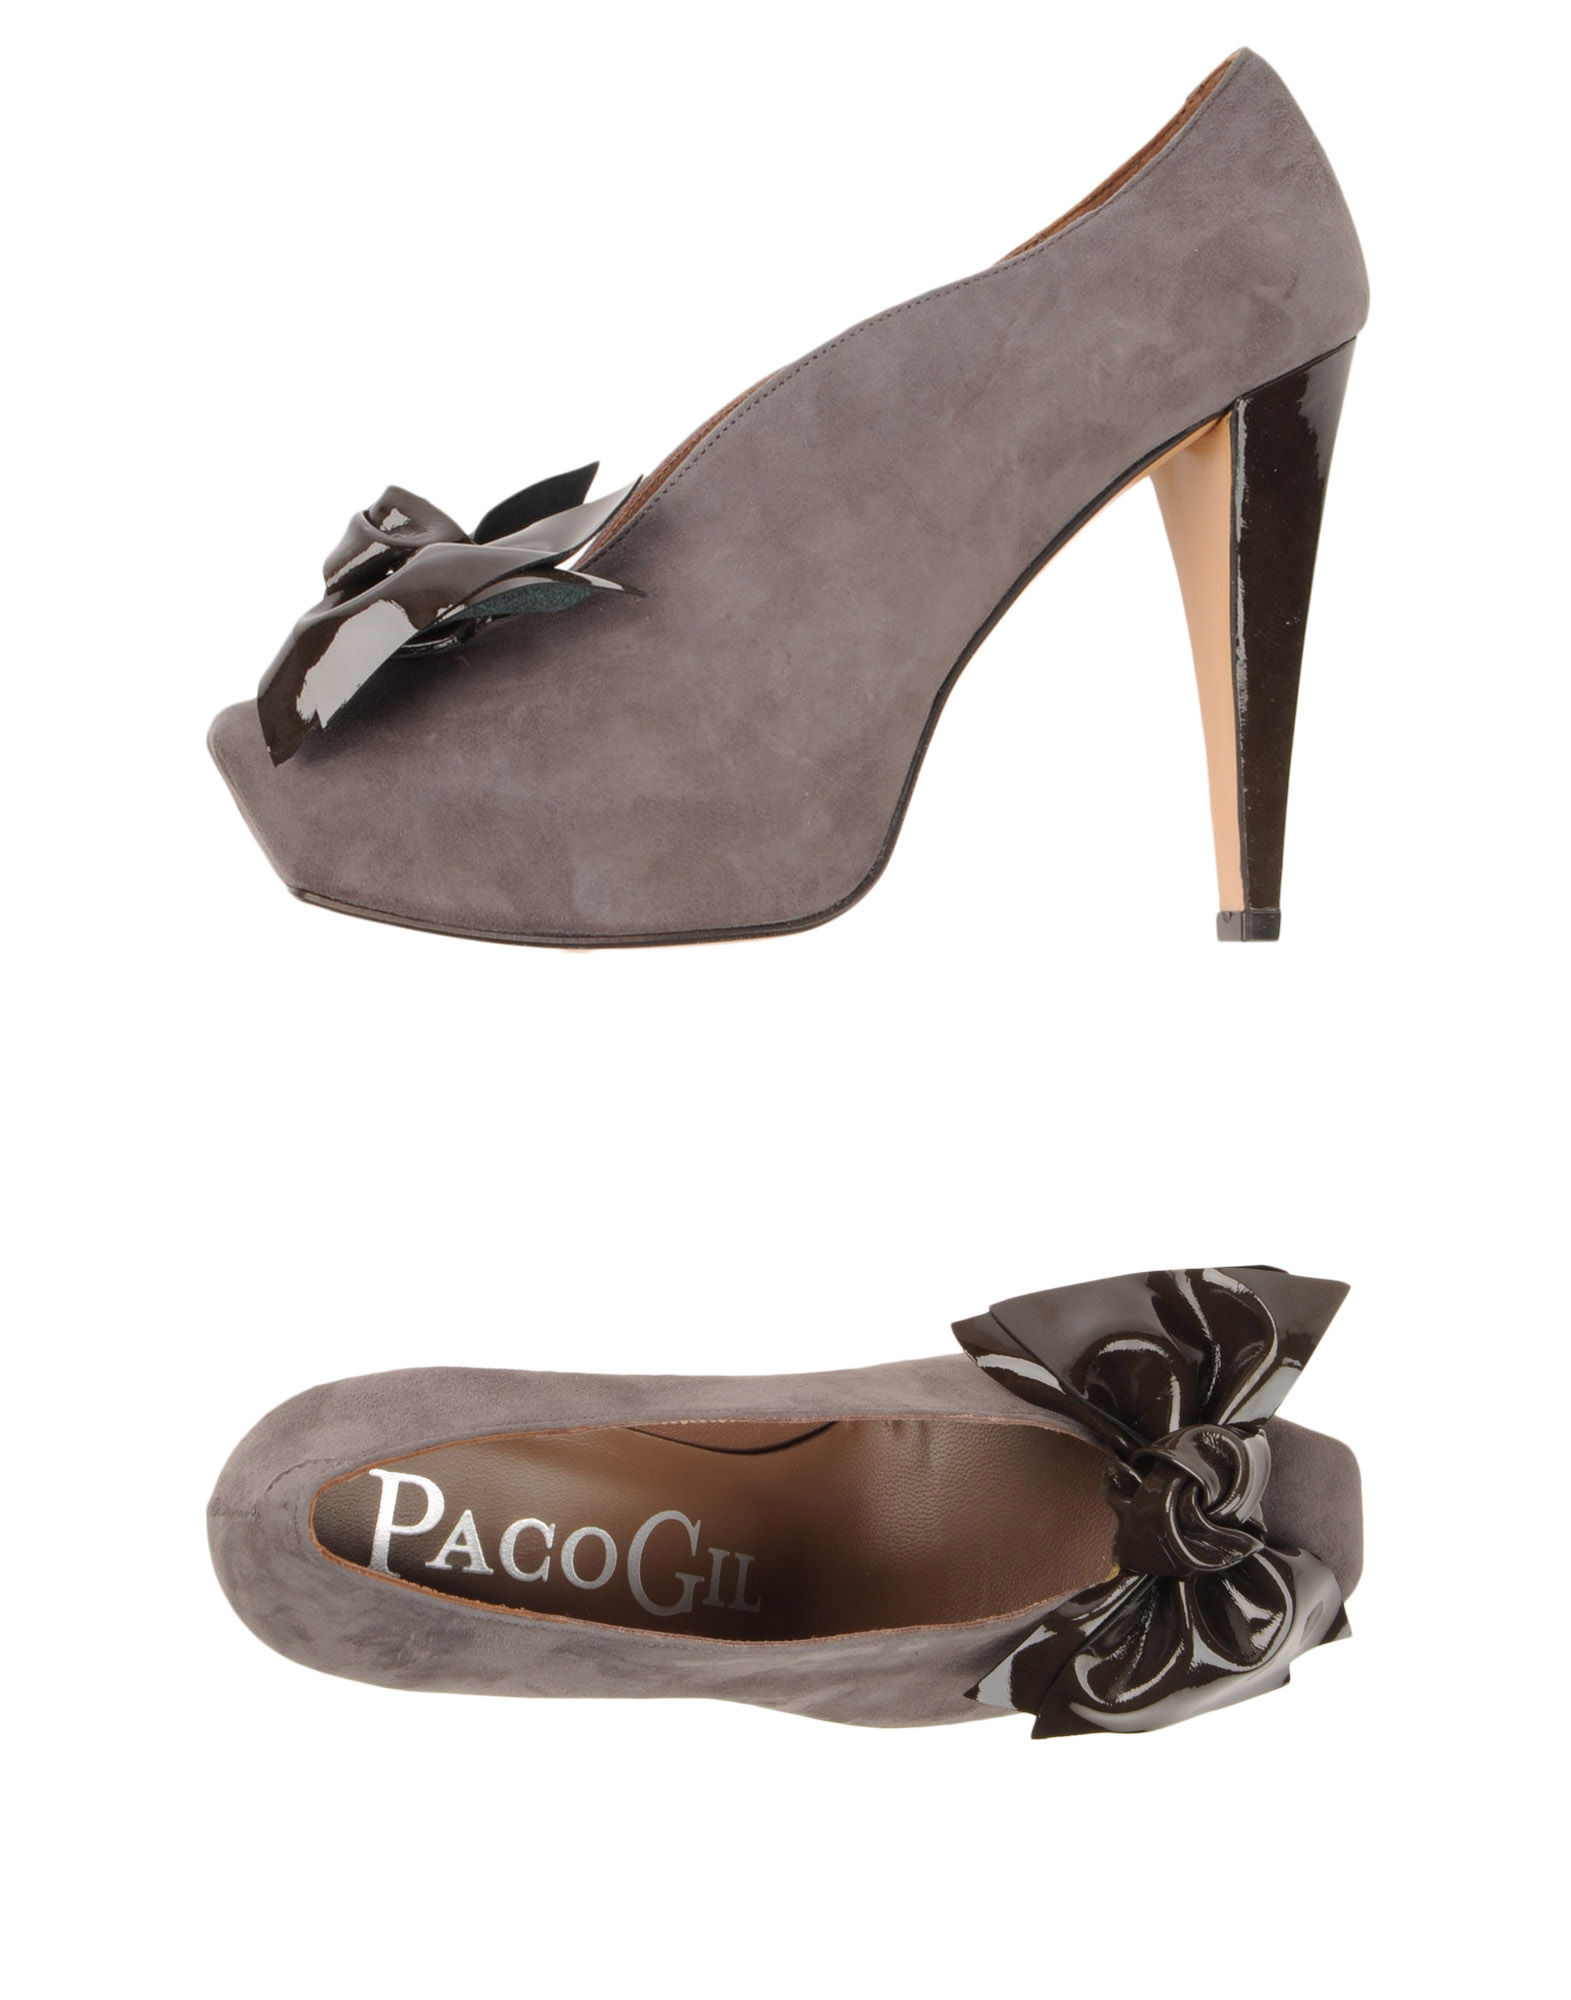 Paco Gil Shoes Uk